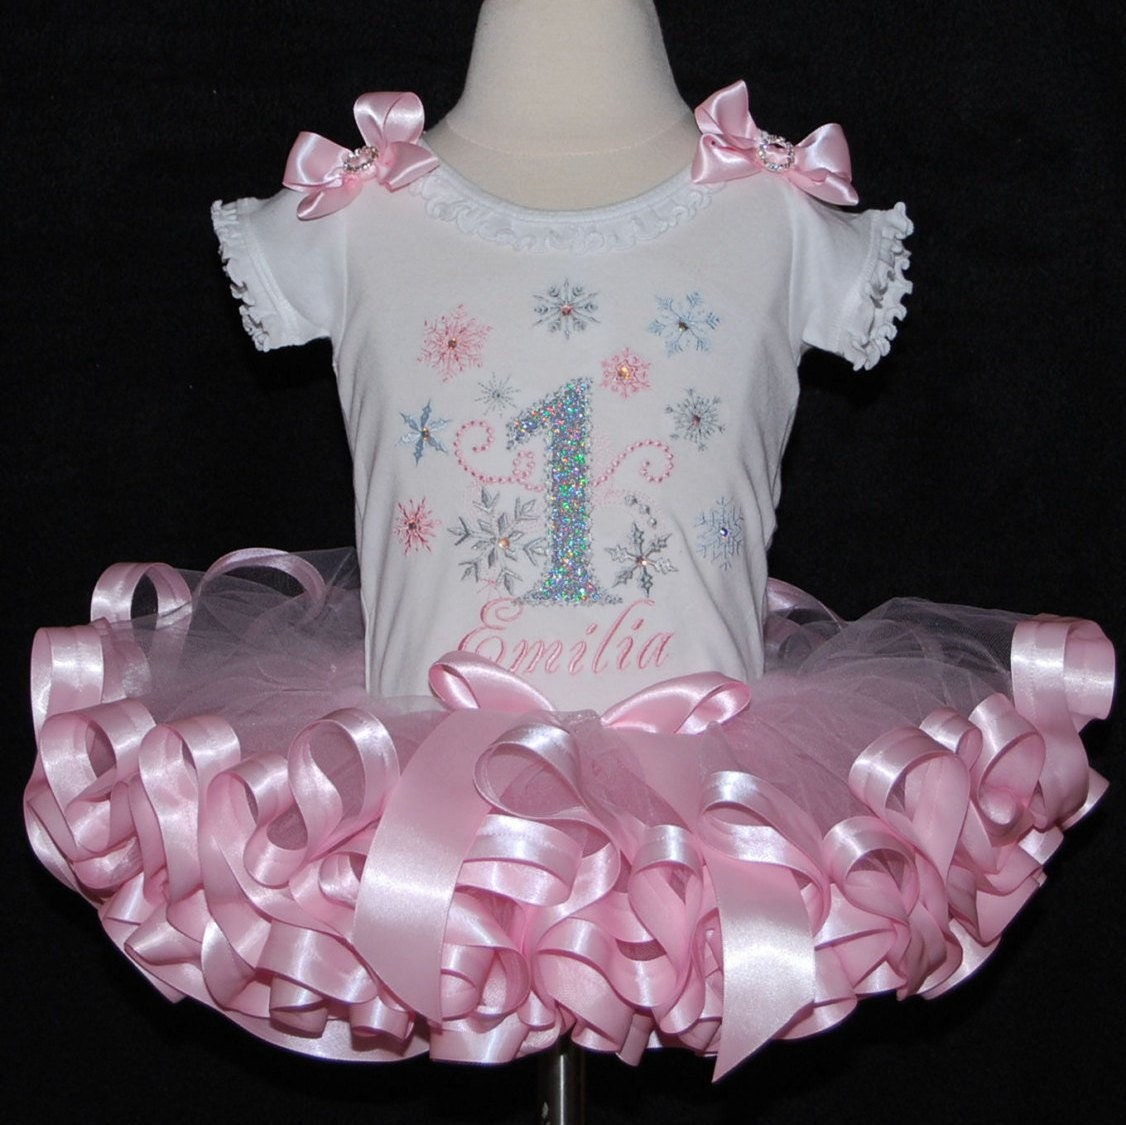 winter onederland outfit, baby girl 1st birthday outfit,1st birthday girl outfit, ribbon trimmed tutu set, toddler tutu dress, ruffle onesie